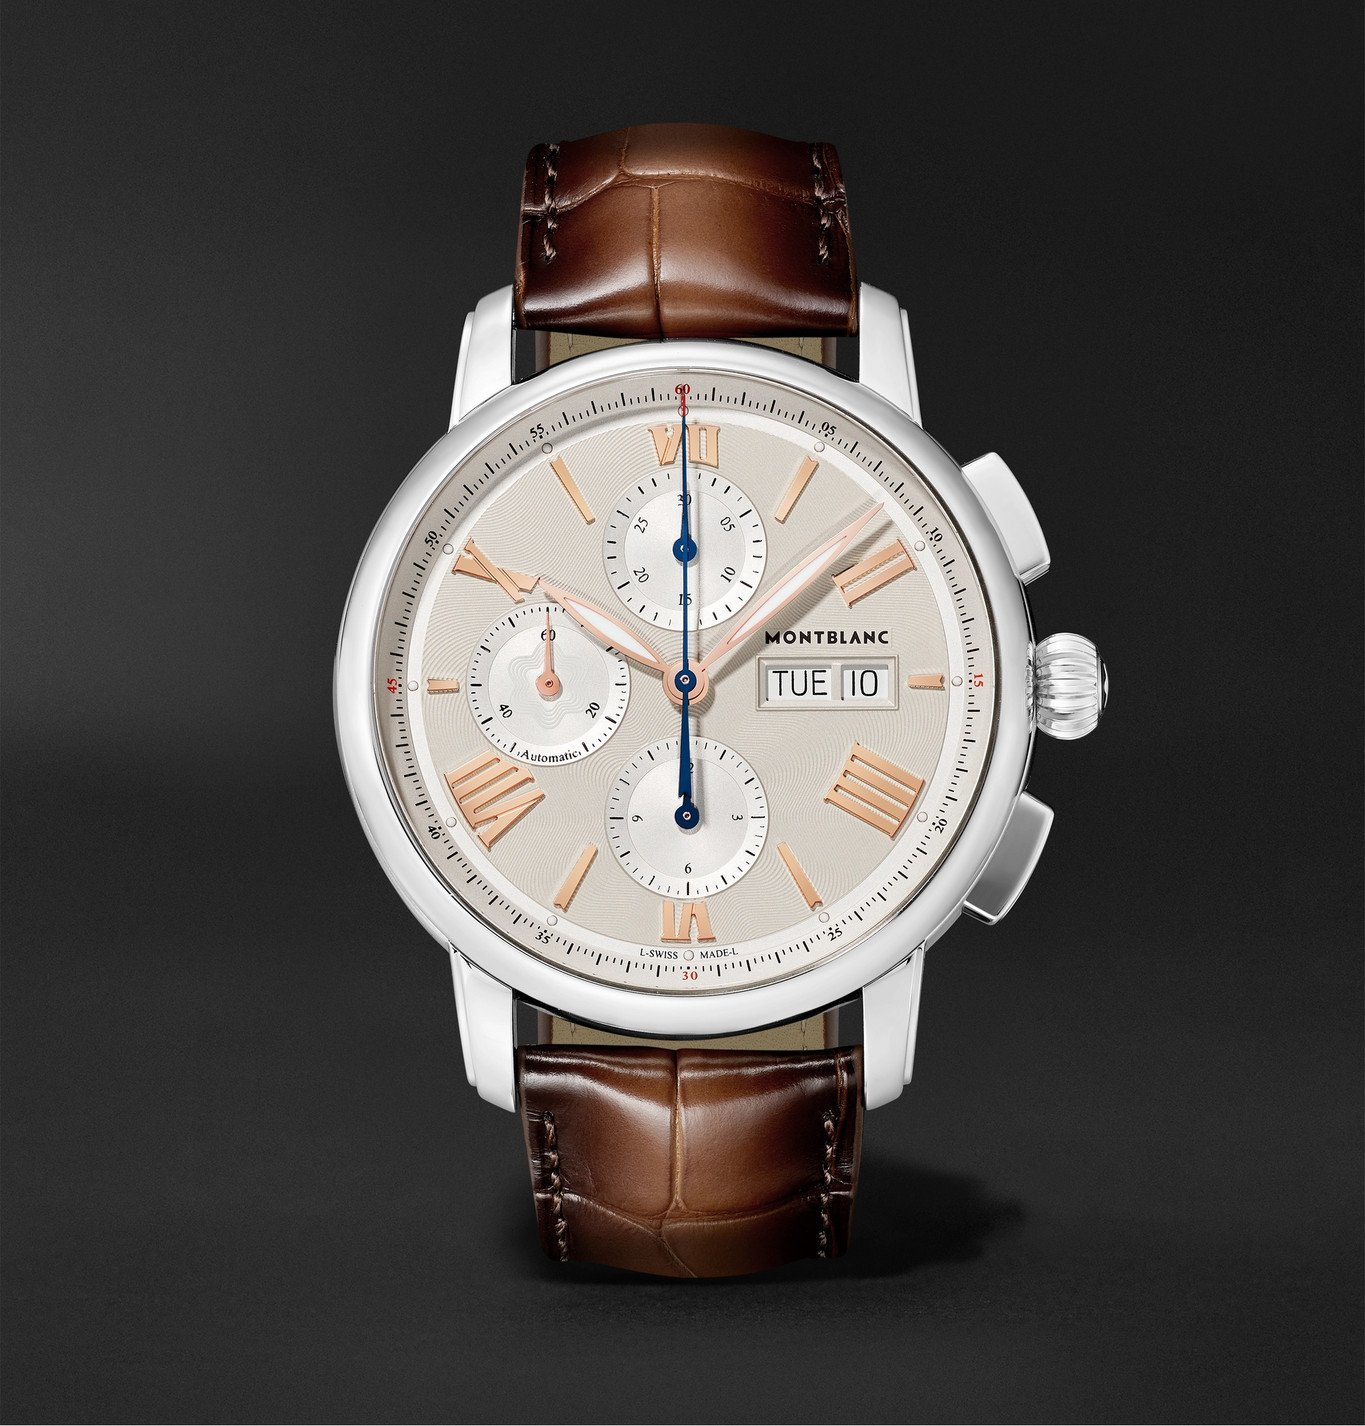 Photo: Montblanc - Star Legacy Automatic Chronograph 43mm Stainless Steel and Alligator Watch, Ref. No. 126080 - White